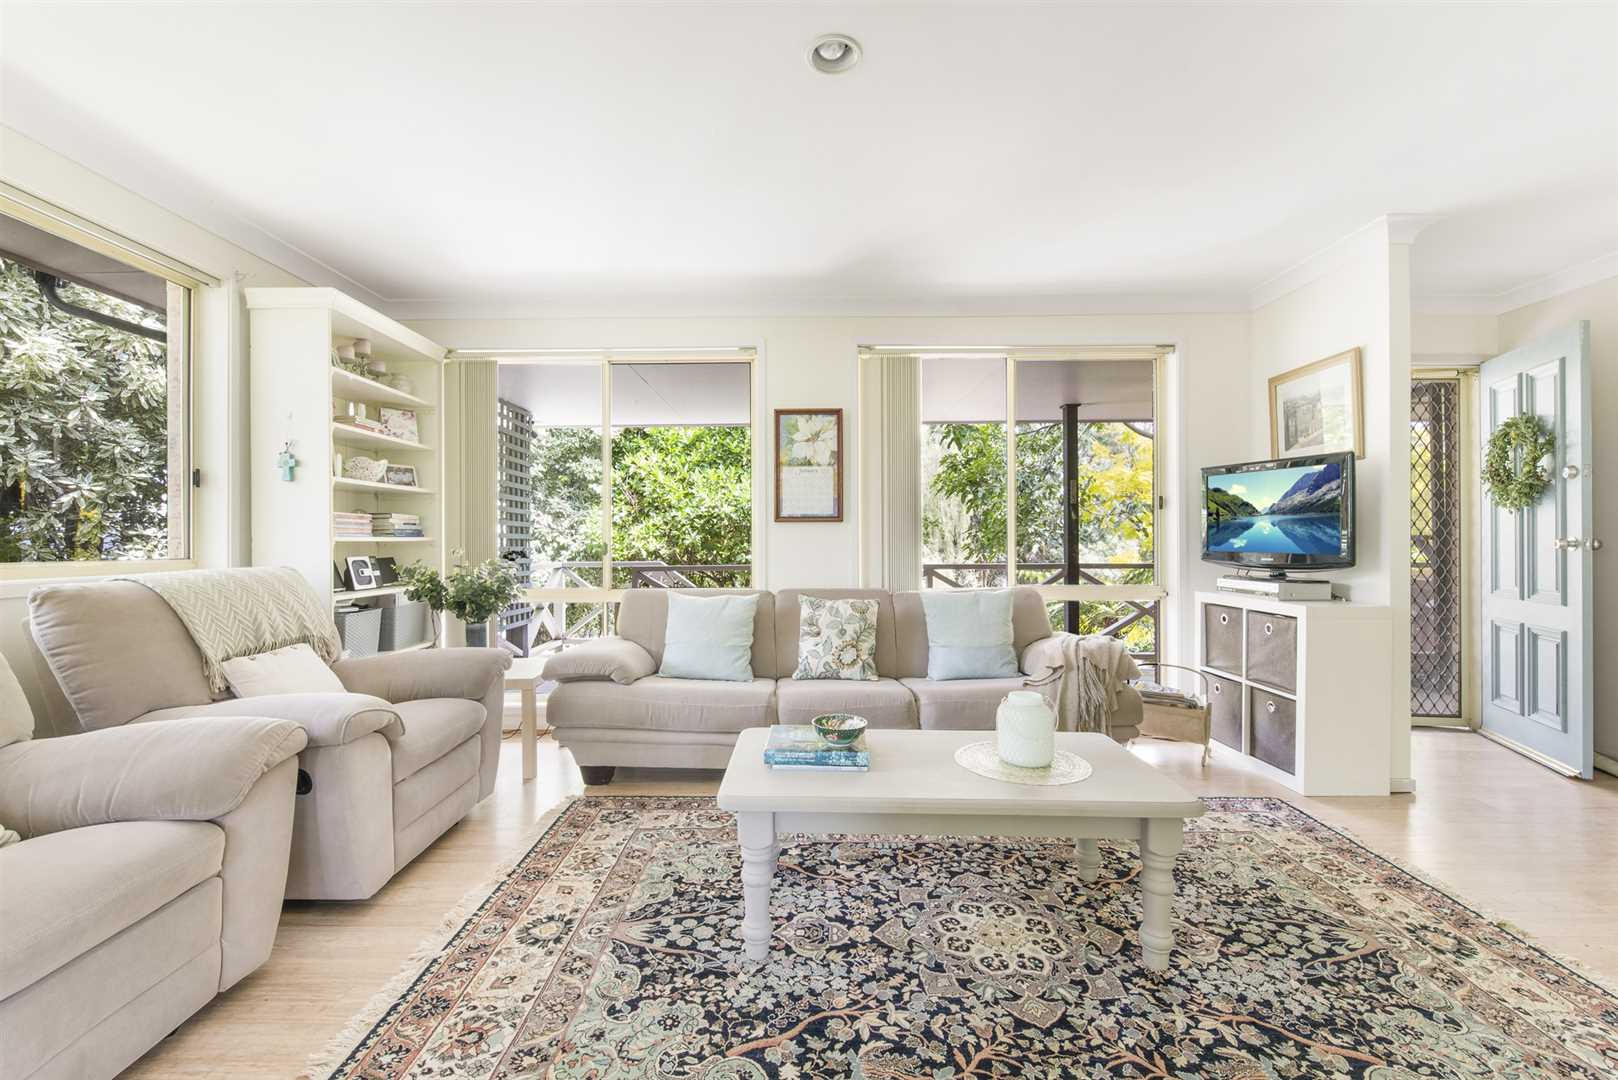 Milton Central with Plenty of Room - 1,008 sqm